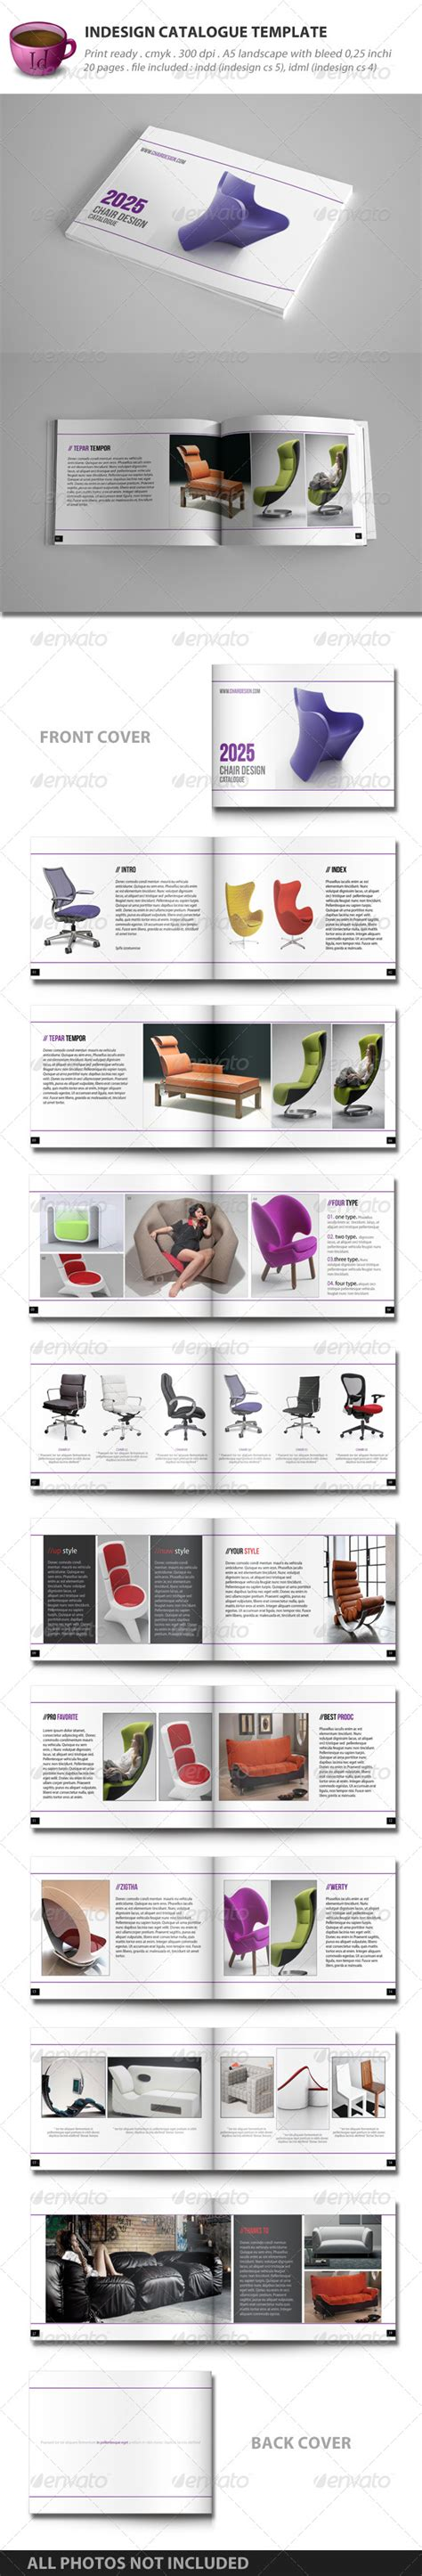 indesign catalog indesign catalogue template graphicriver